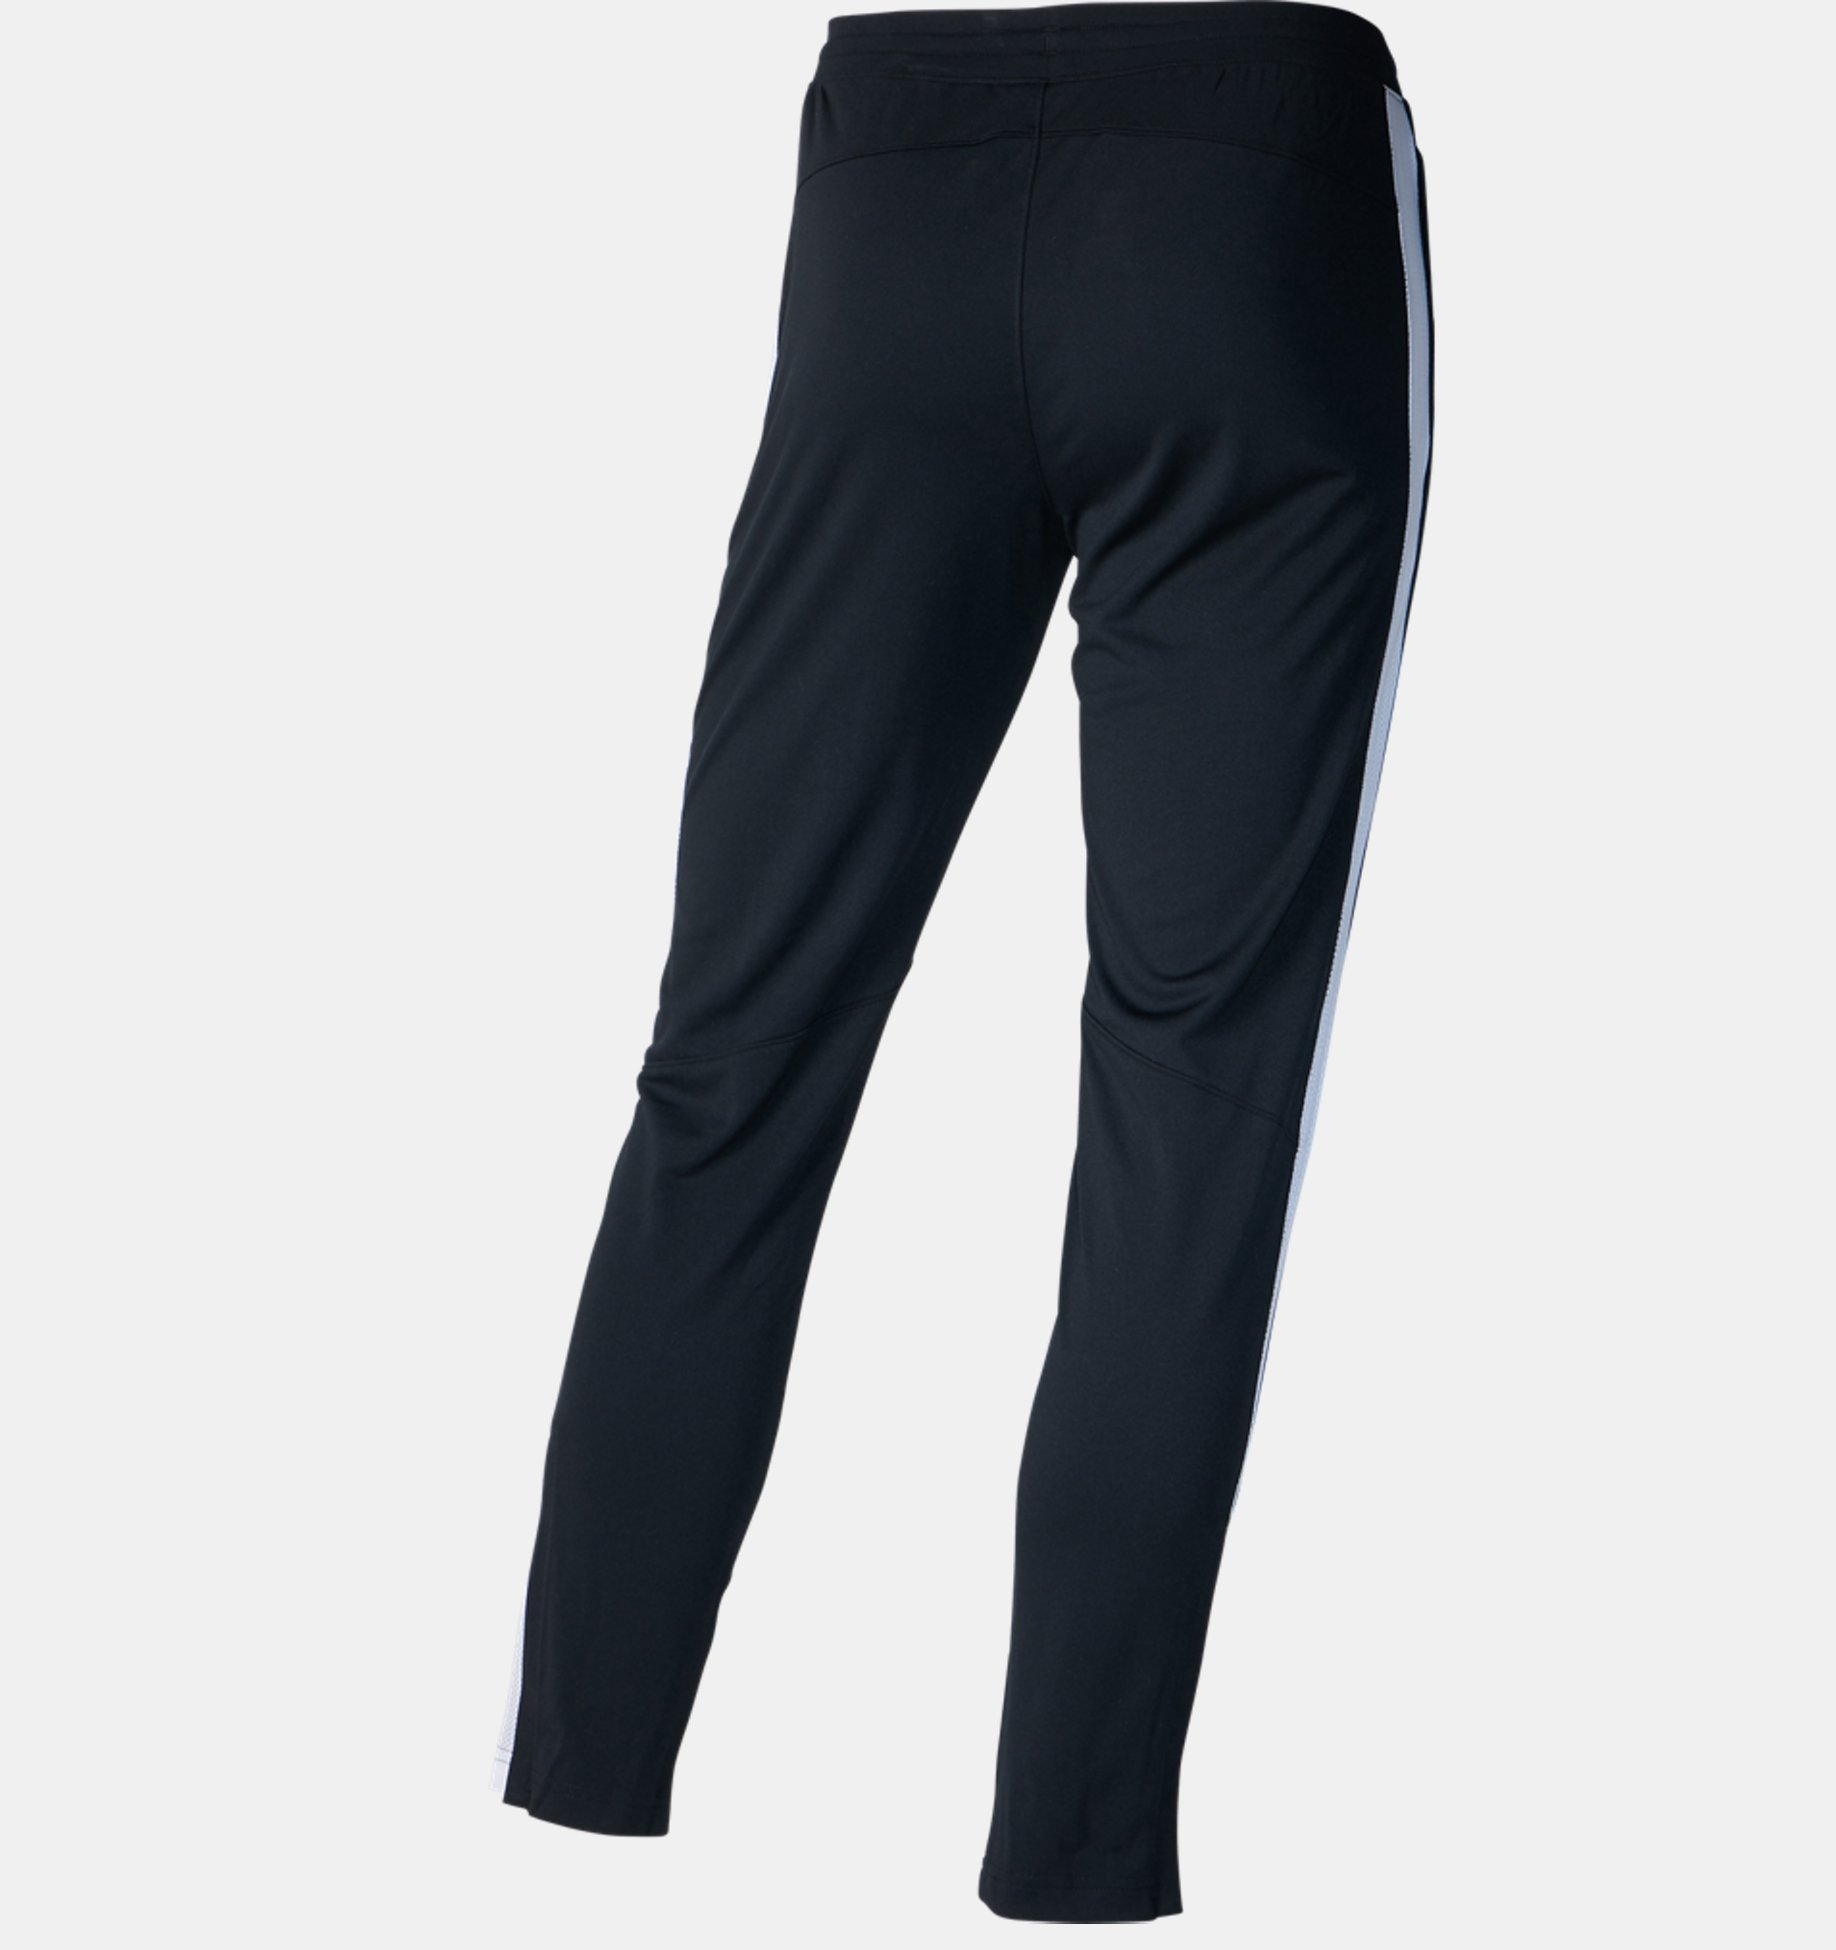 5b37d5f148 Men's UA Sportstyle Pique Pants | Under Armour NZ